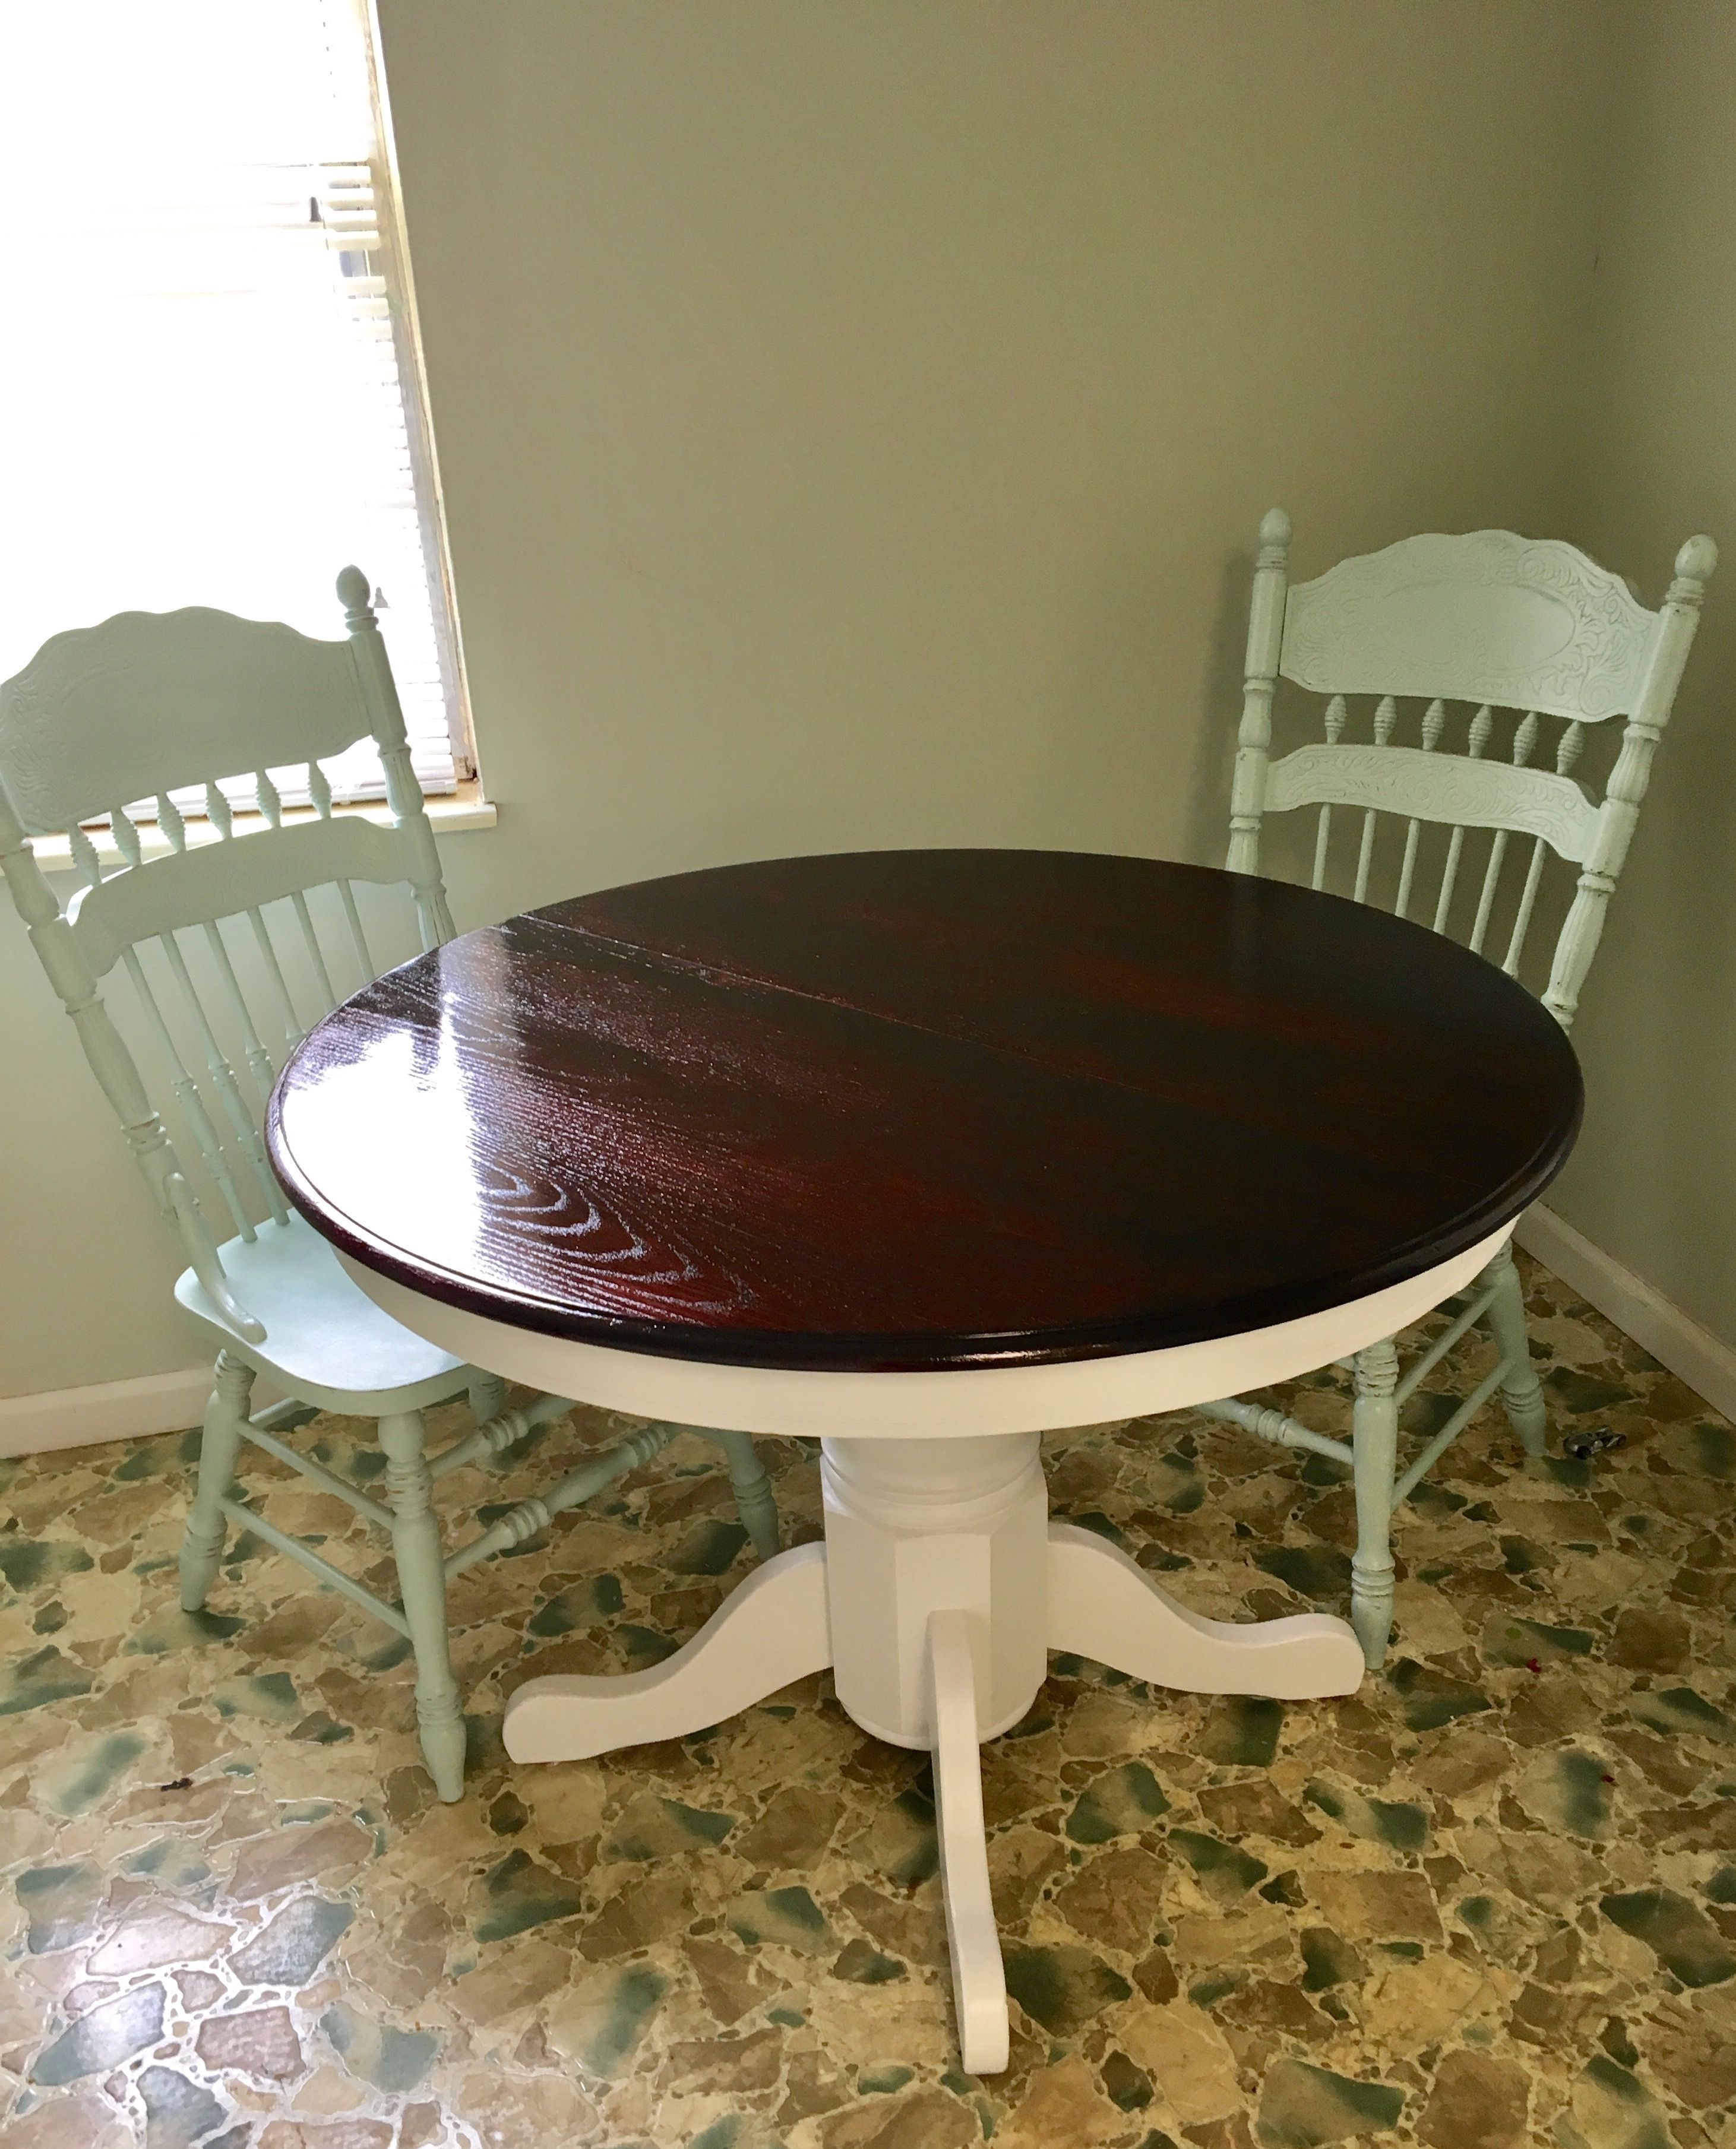 Round Oak Table And Chairs Chair Covers Knoxville Tn Before After Makeover Redo Upcycled Dining Stained Top With White Painted Base Pedestal